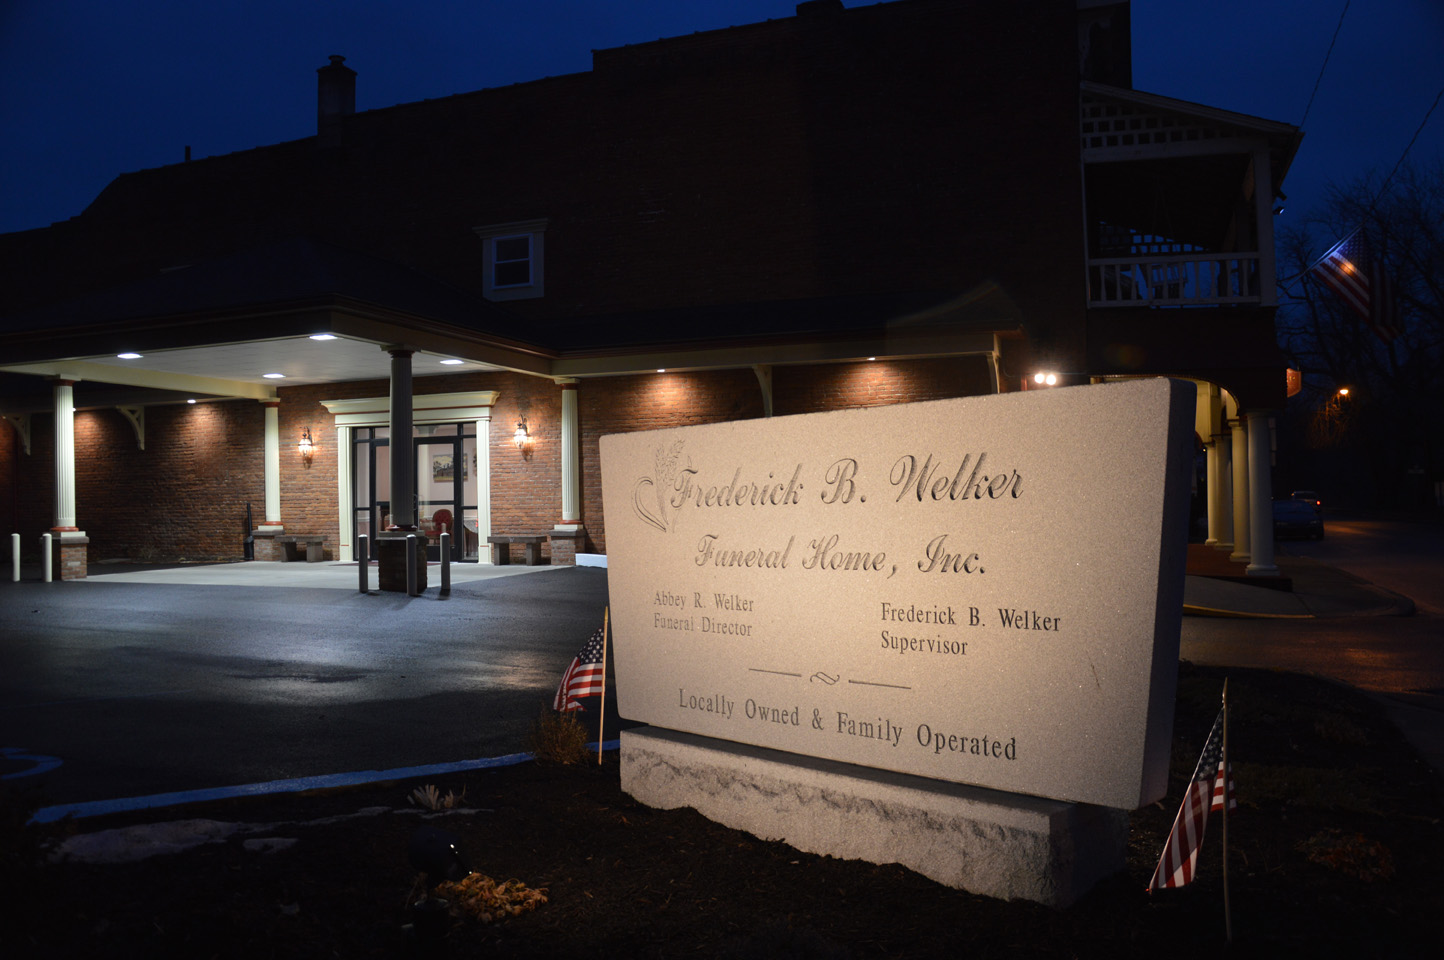 Frederick B. Welker Funeral Home